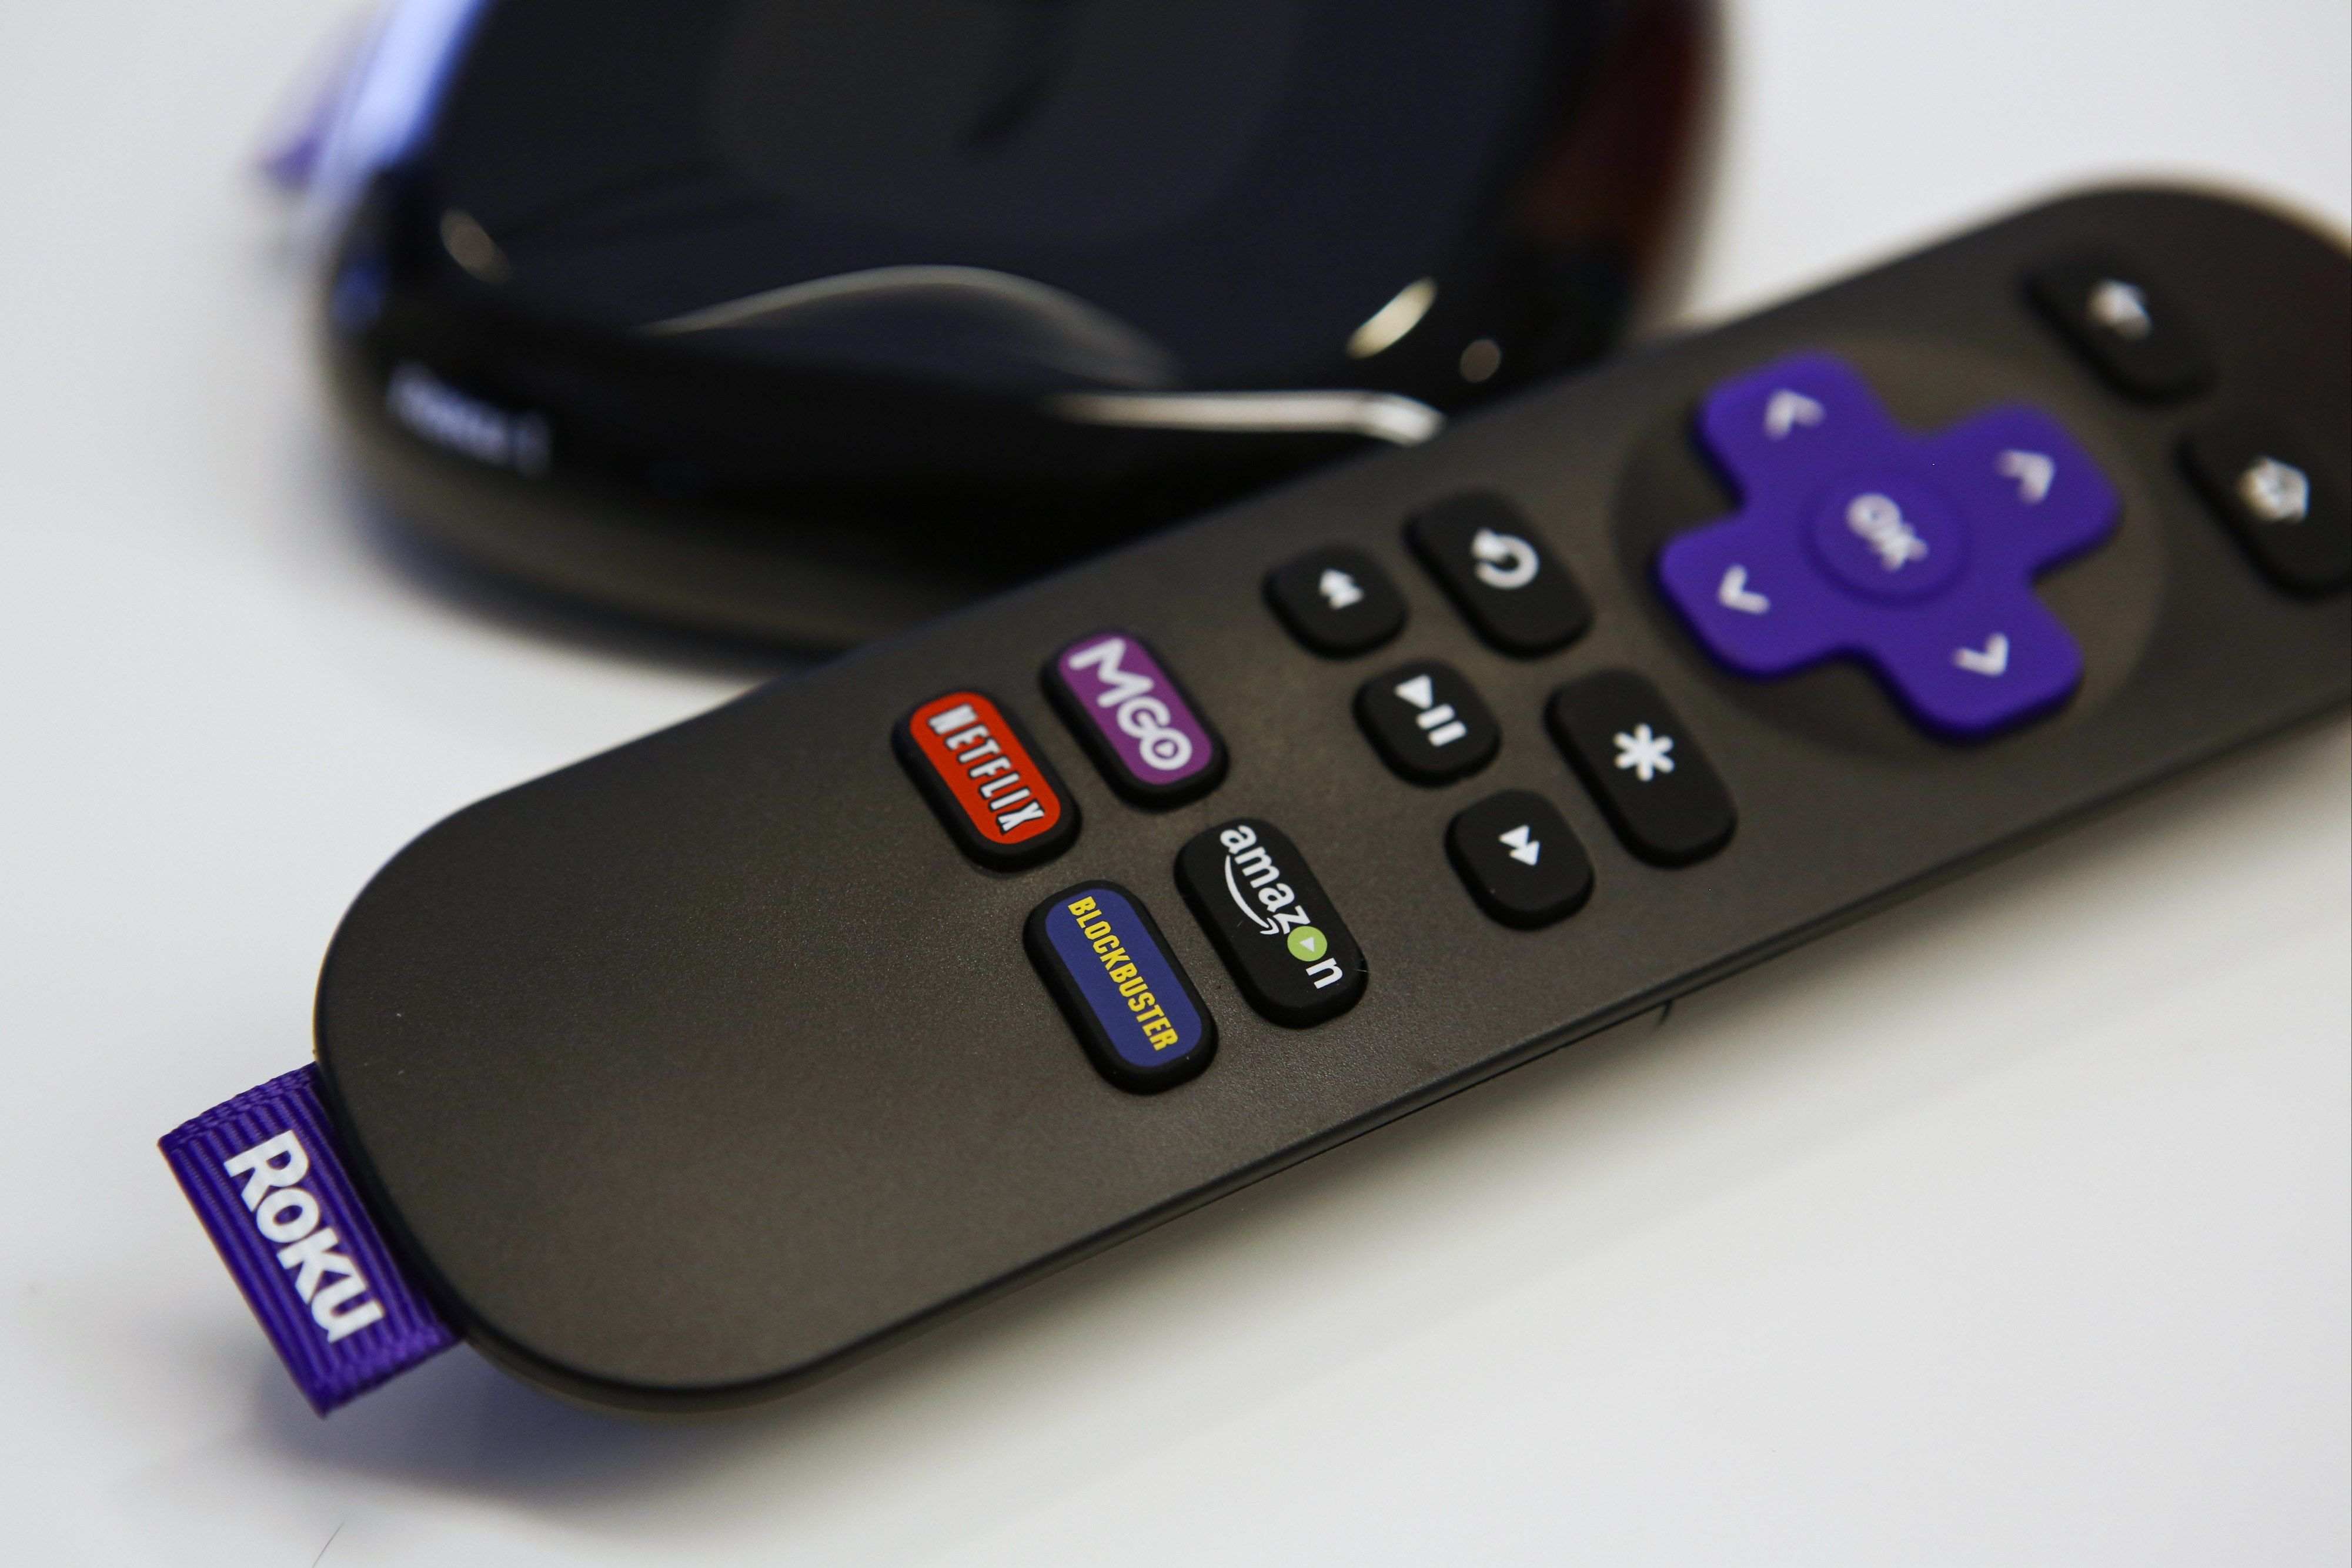 Most of the tasks on roku streaming player are done